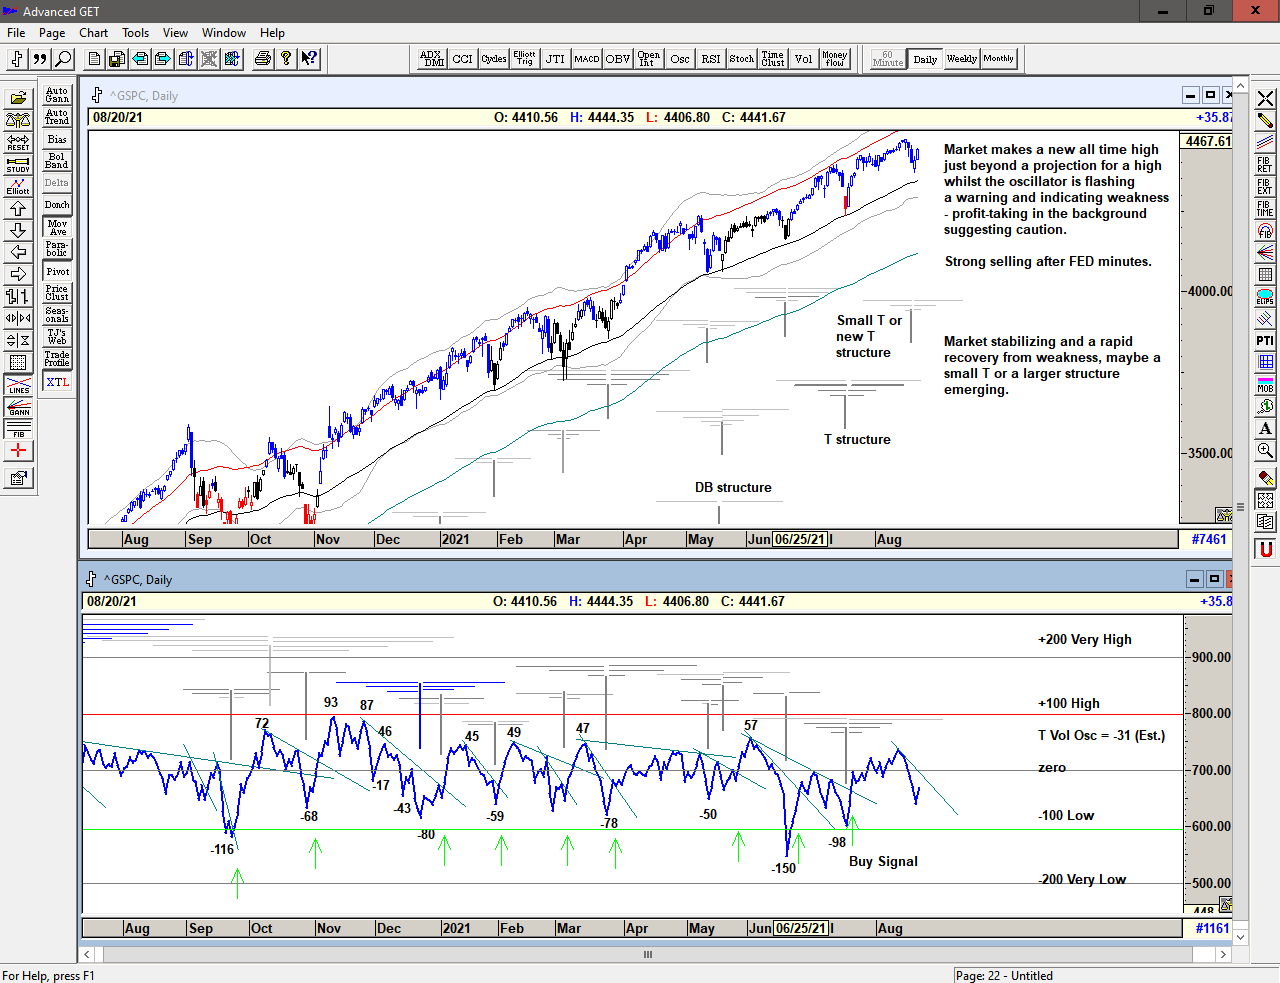 Chart of S&P 500 with T volume oscillator for 23 August 2021